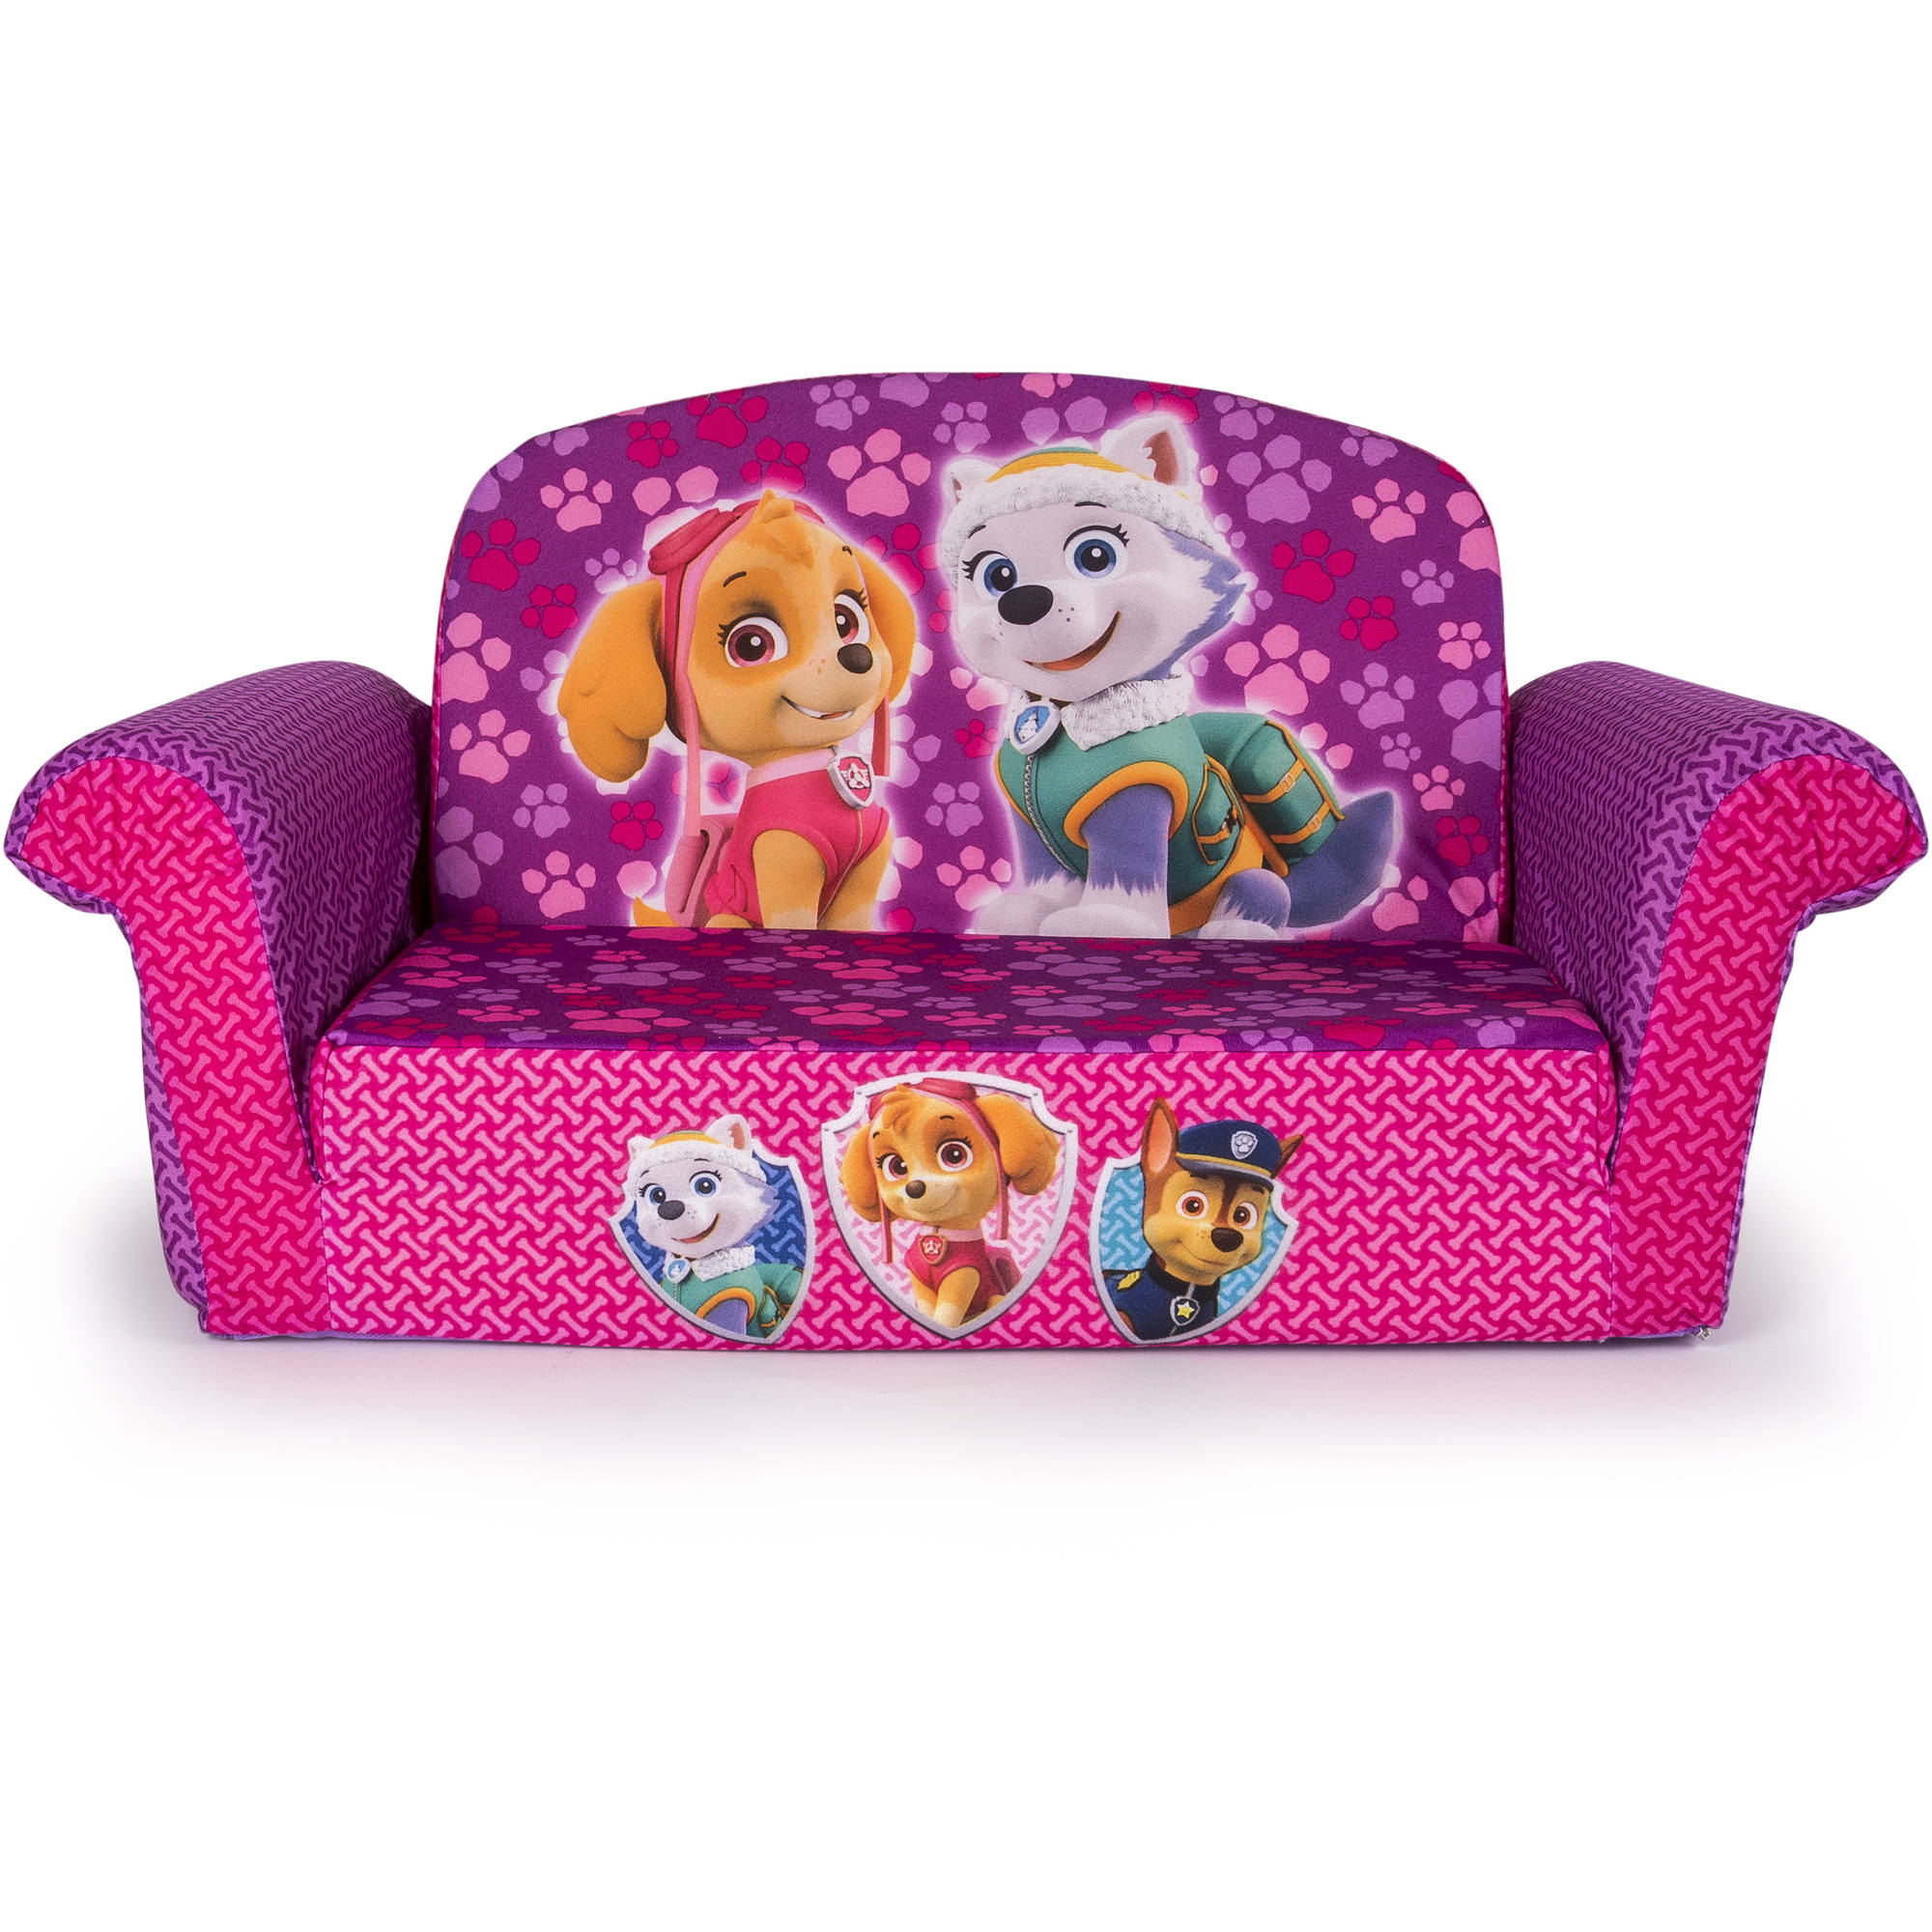 Marshmallow 2-in-1 Flip Open Sofa, Paw Patrol Pink Edition